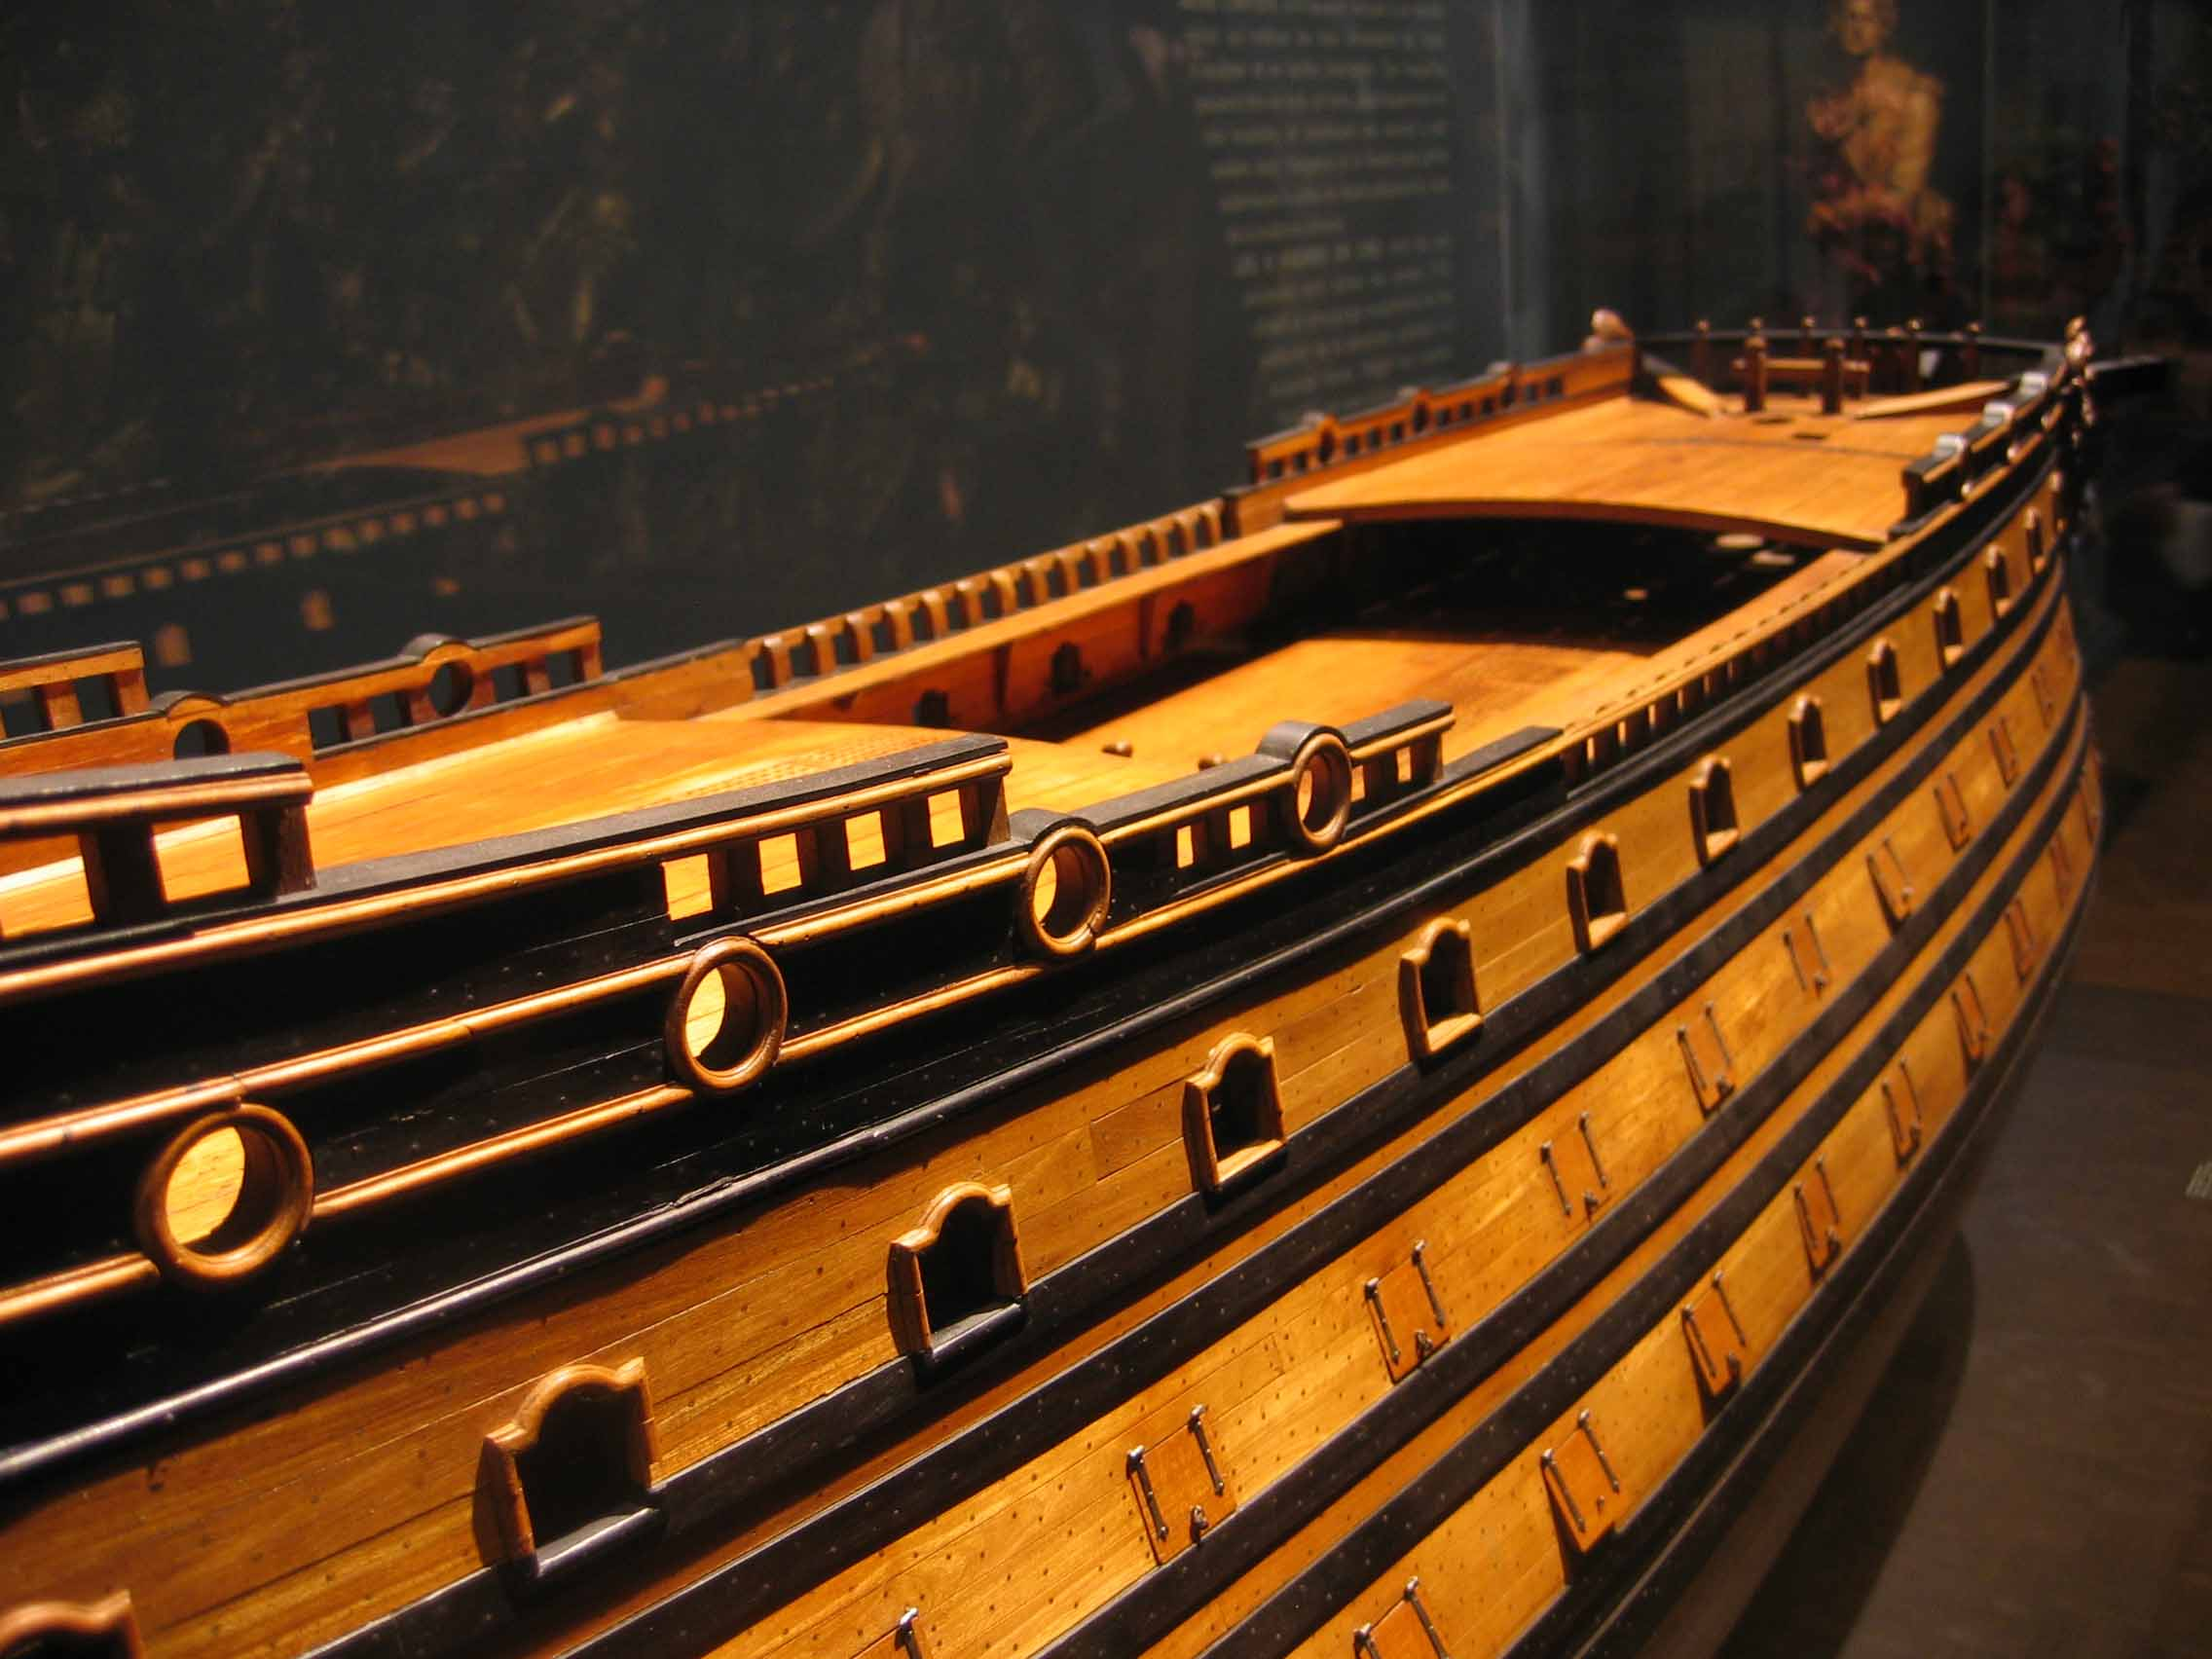 Photos of model of Le Soleil Royal in the Musée de la ...